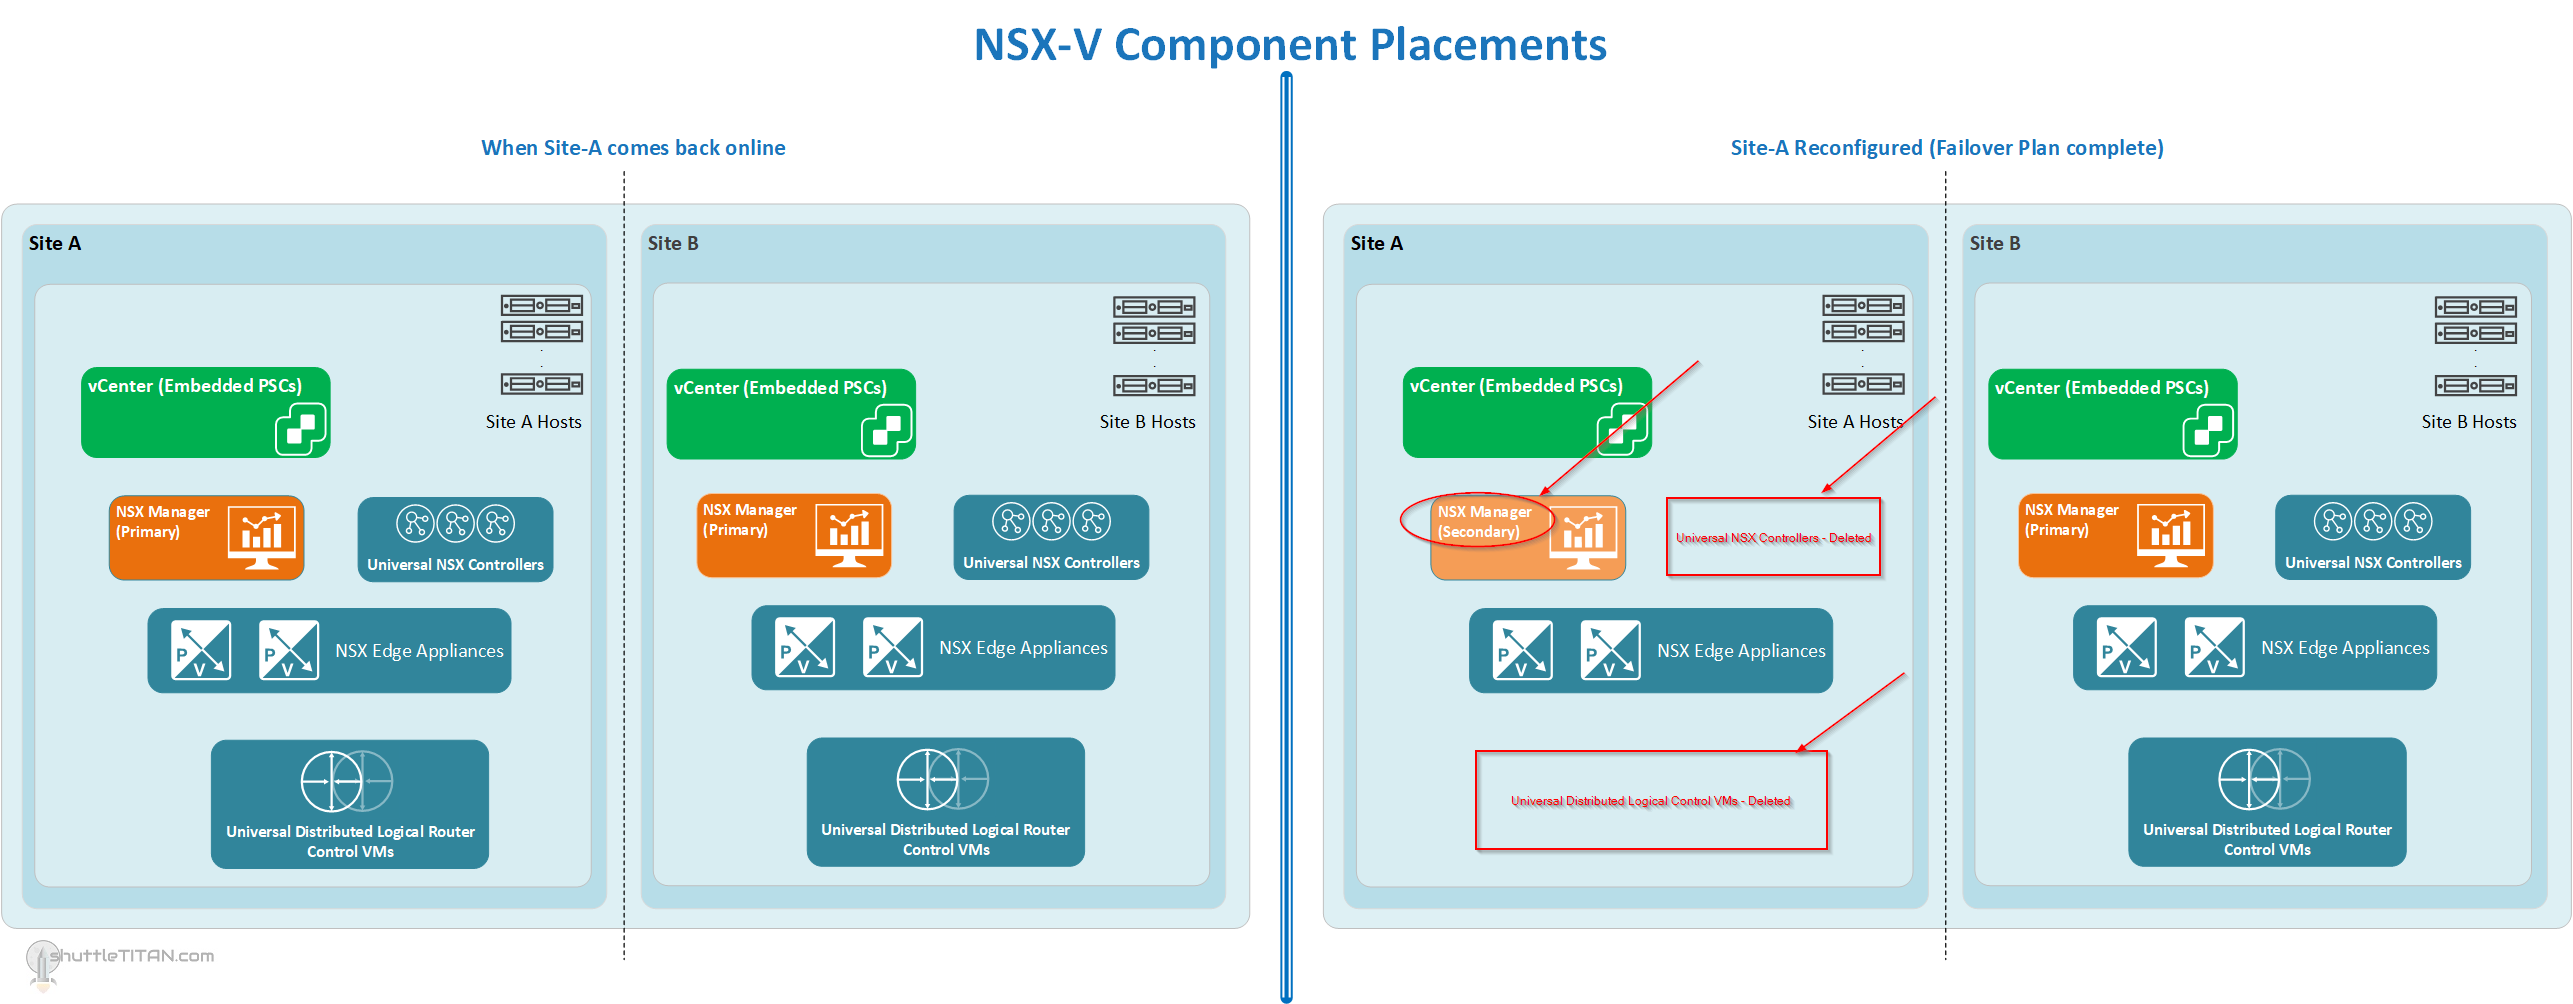 NSX-V Site Failover/Failback Plan: Part 3